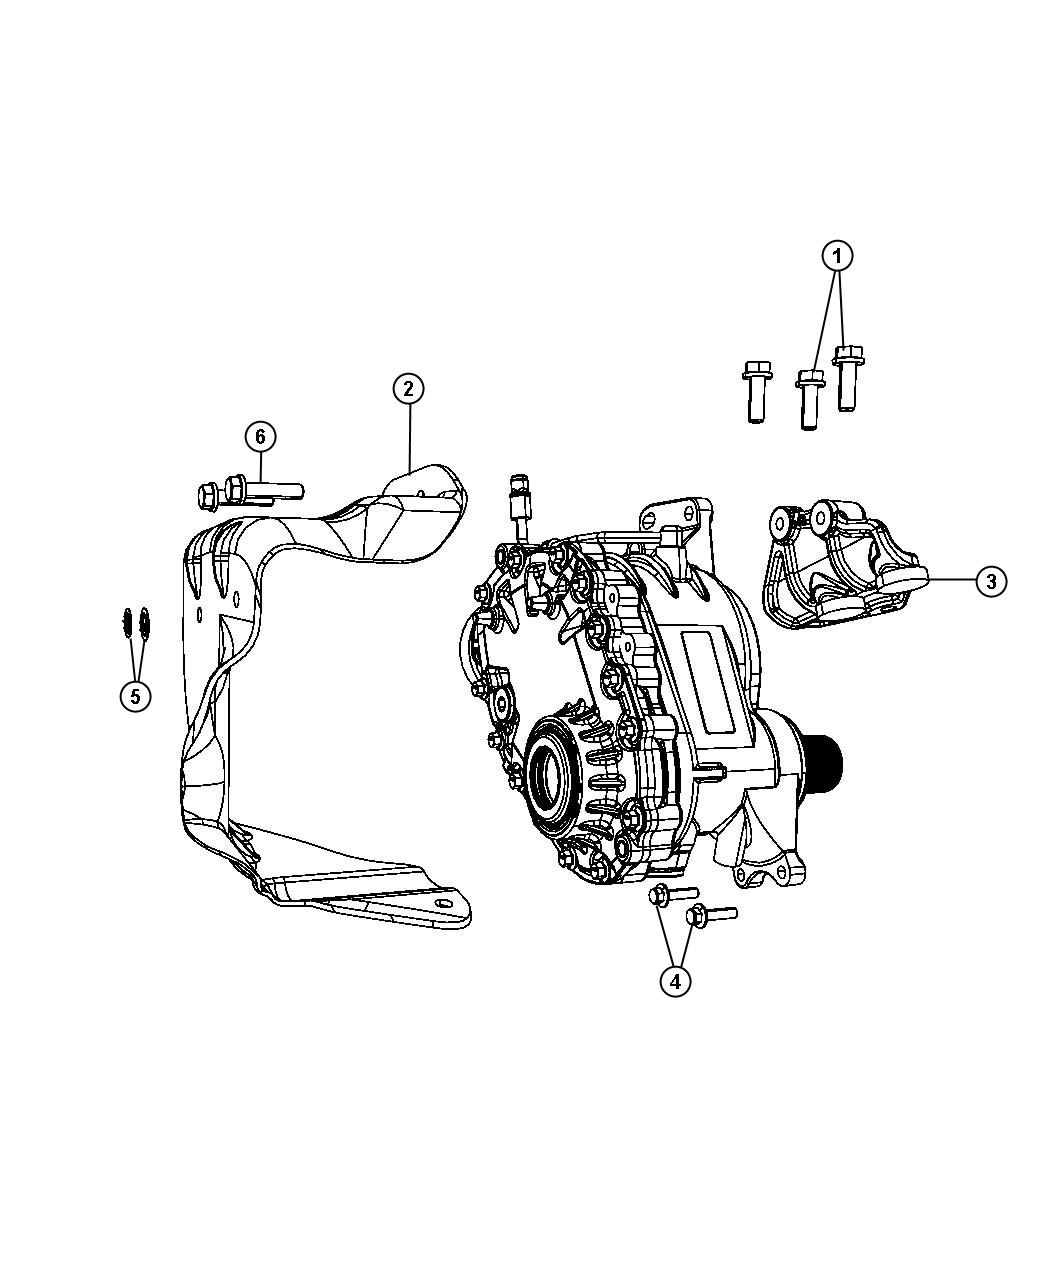 Pt Cruiser Transmission Mount Diagram Free Wiring Diagram For You